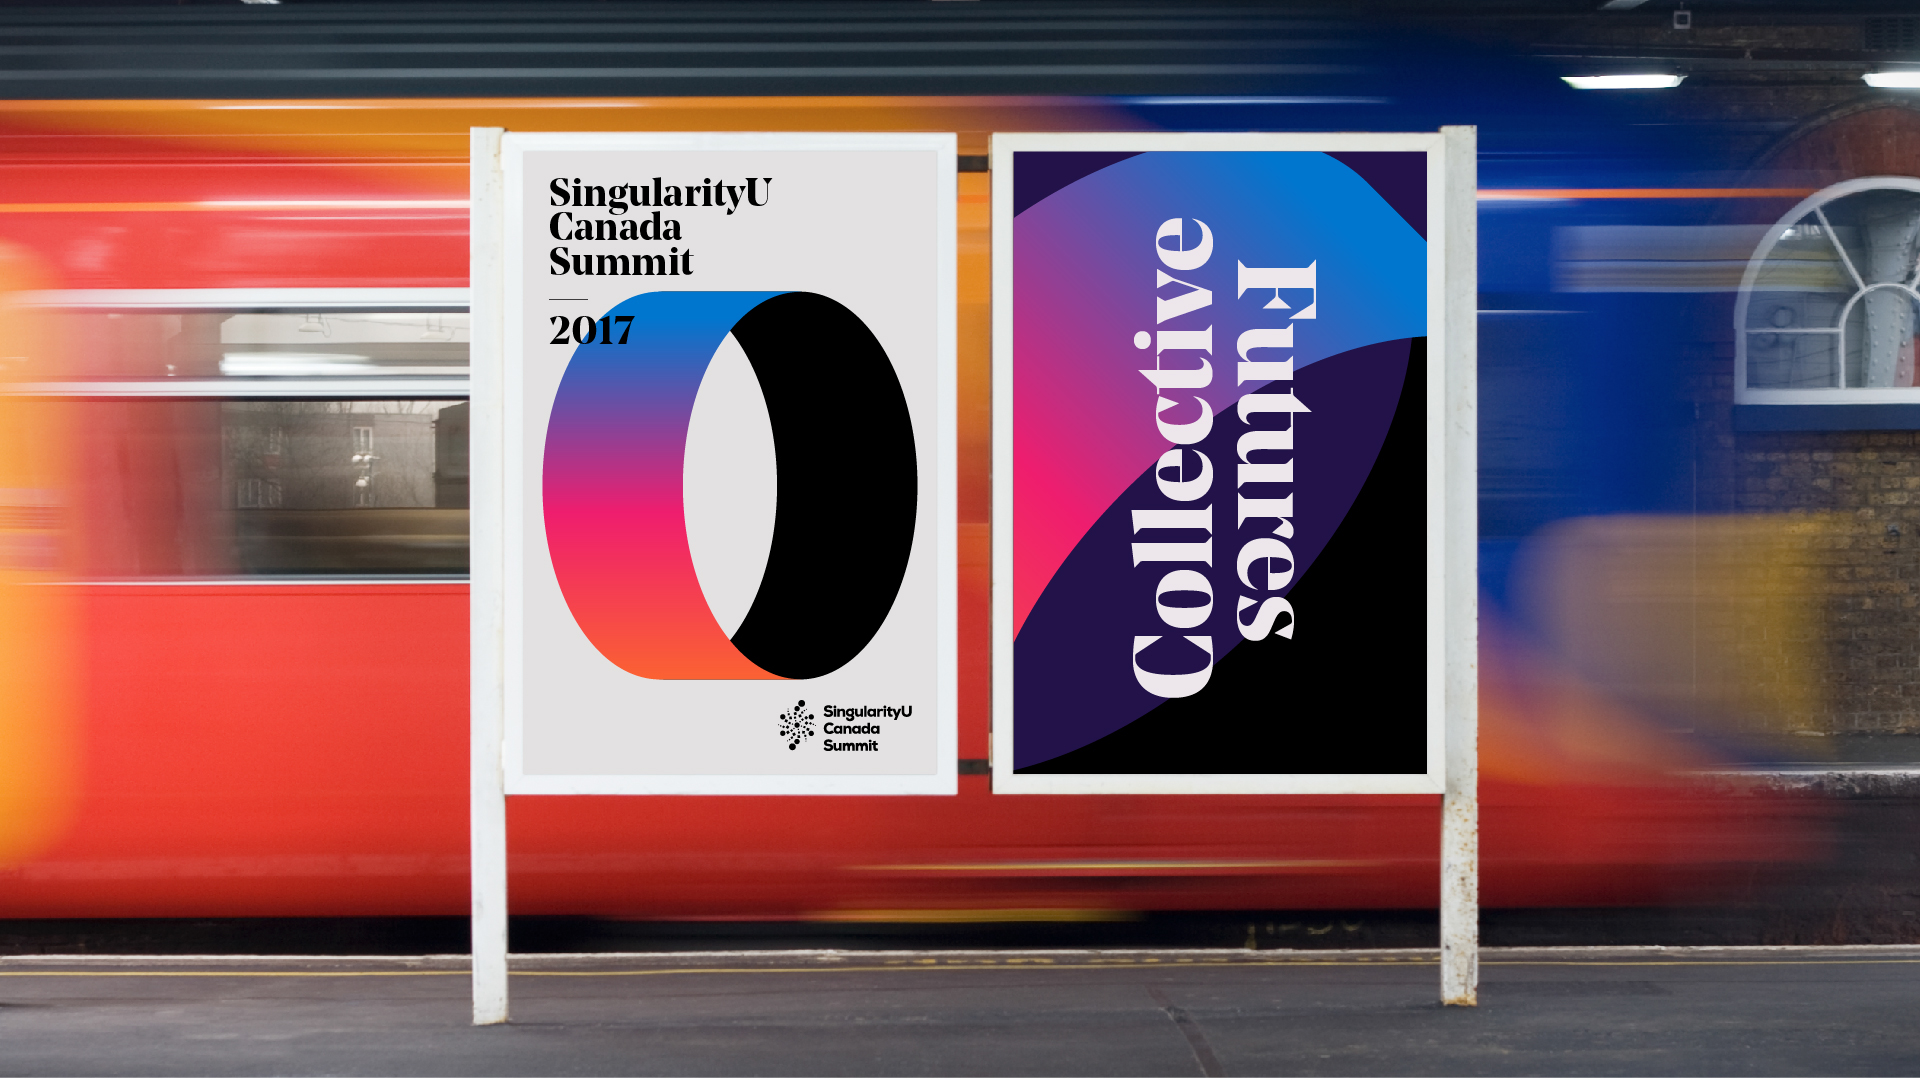 A Look at the SingularityU Canada Summit Brand Identity